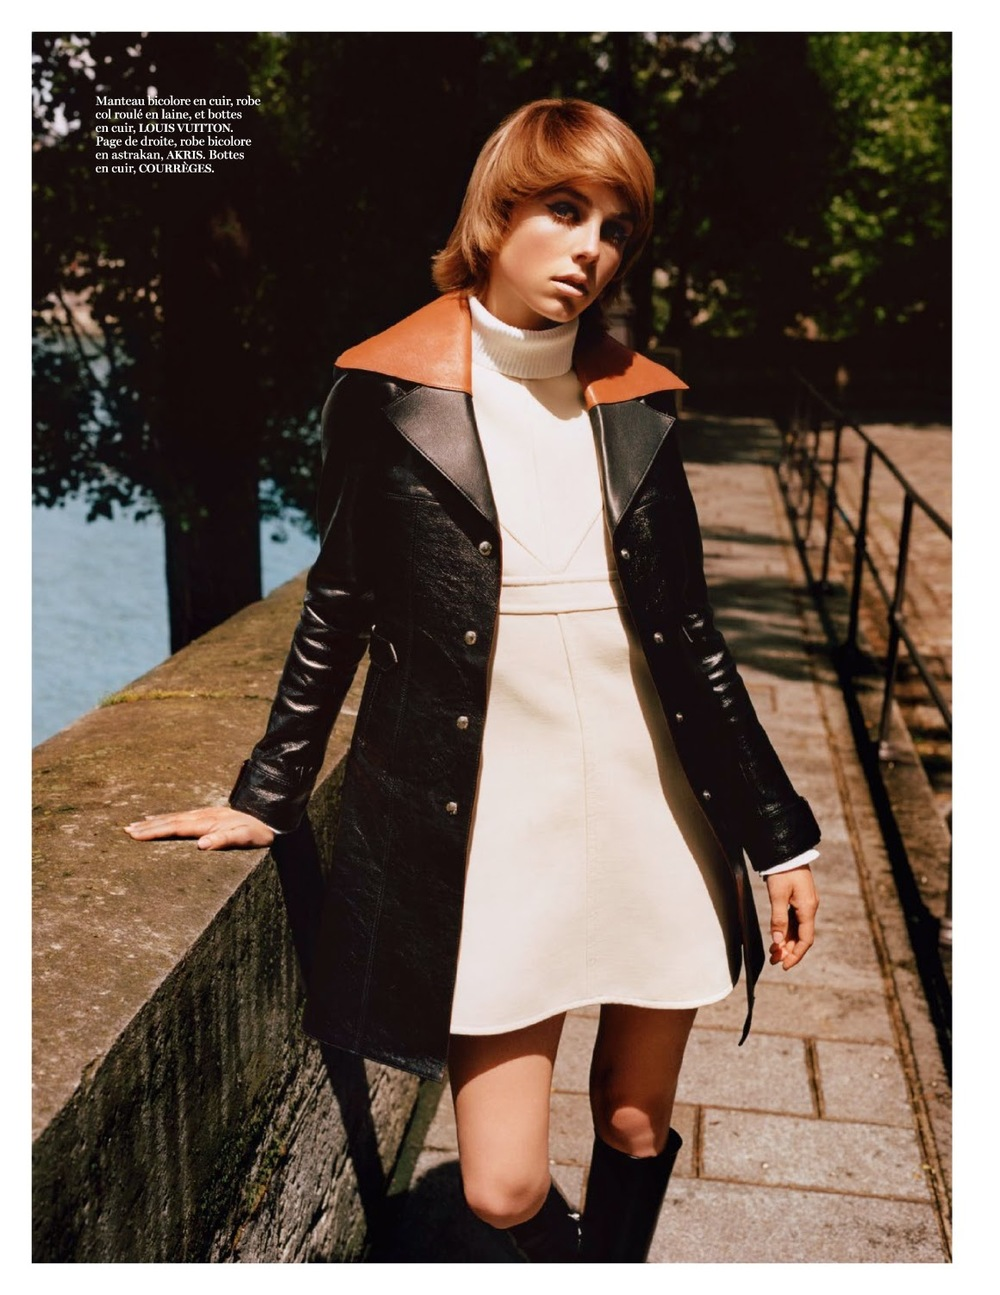 Edie-Campbell-by-Alasdair-McLellan-for-Vogue-Paris-September-2014-7.jpg